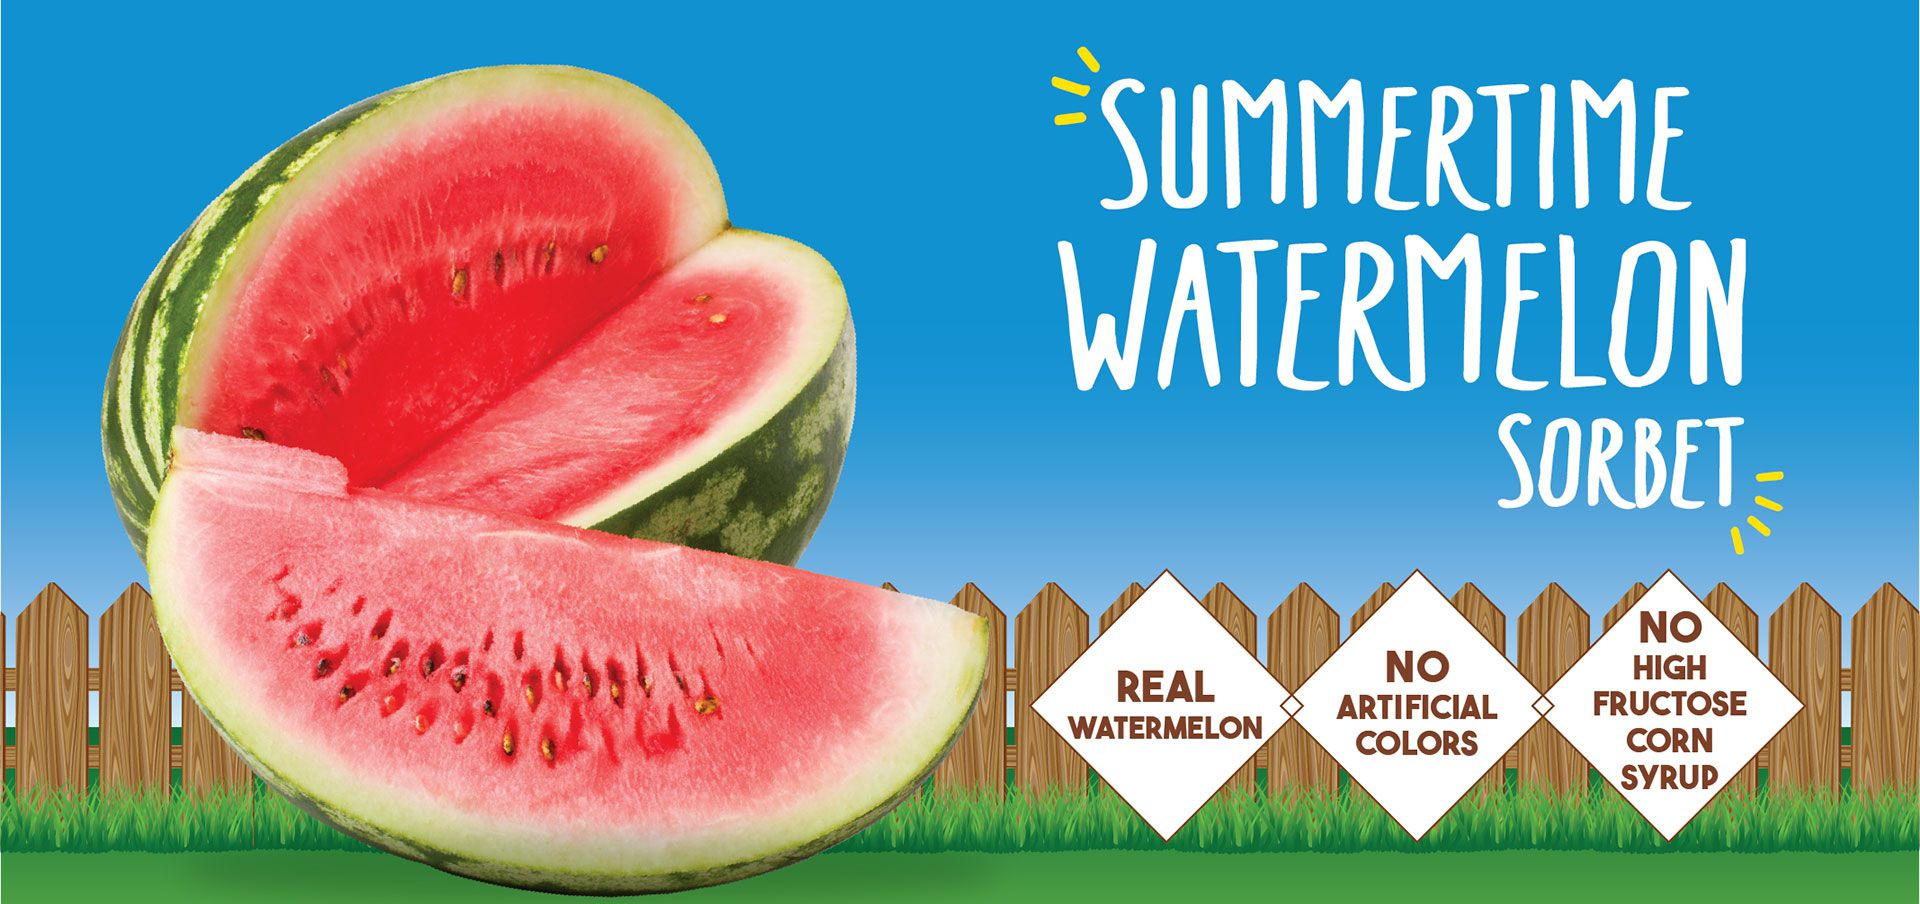 vegan summertime watermelon sorbet label image